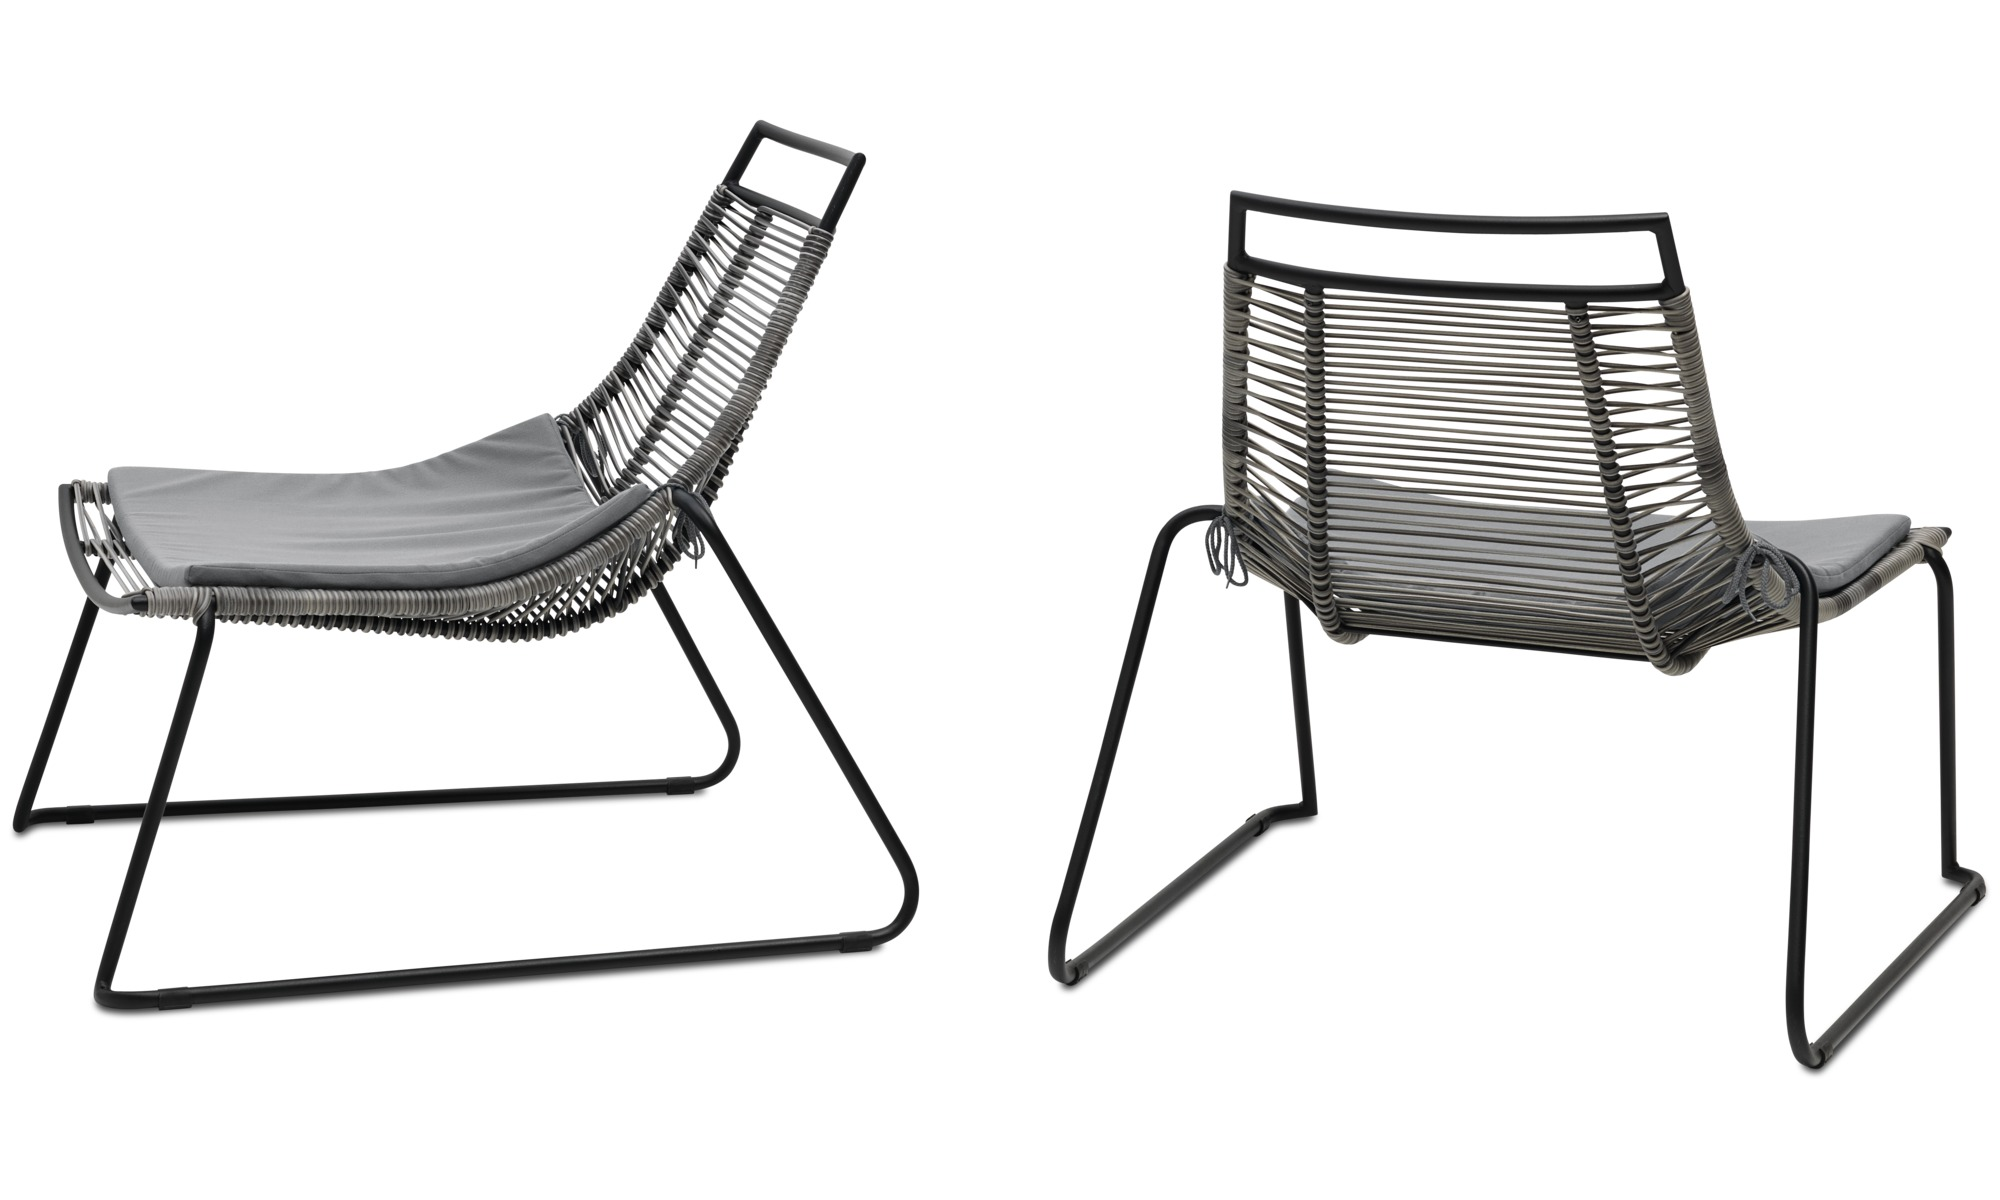 Ypperlig Outdoor chairs - Elba Lounge chair (for in- and outdoor use SN-51